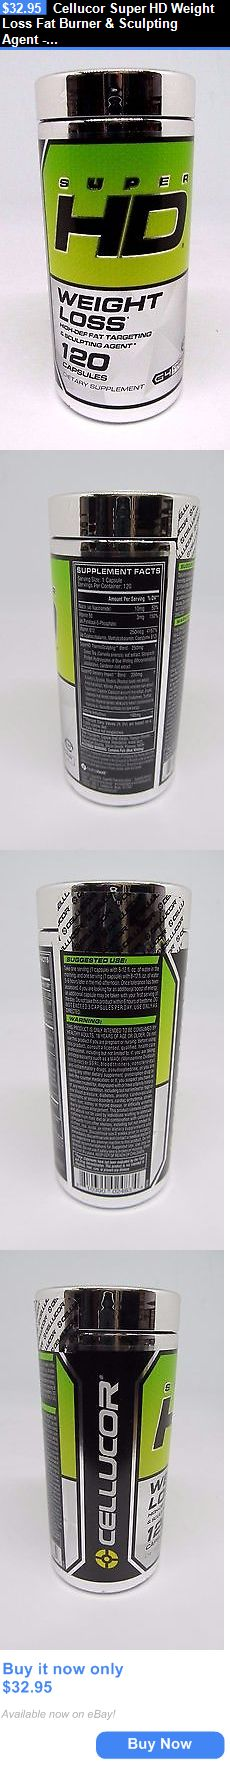 Sports Diet and Weight Loss: Cellucor Super Hd Weight Loss Fat Burner And Sculpting Agent - 120 Capsules BUY IT NOW ONLY: $32.95 ()